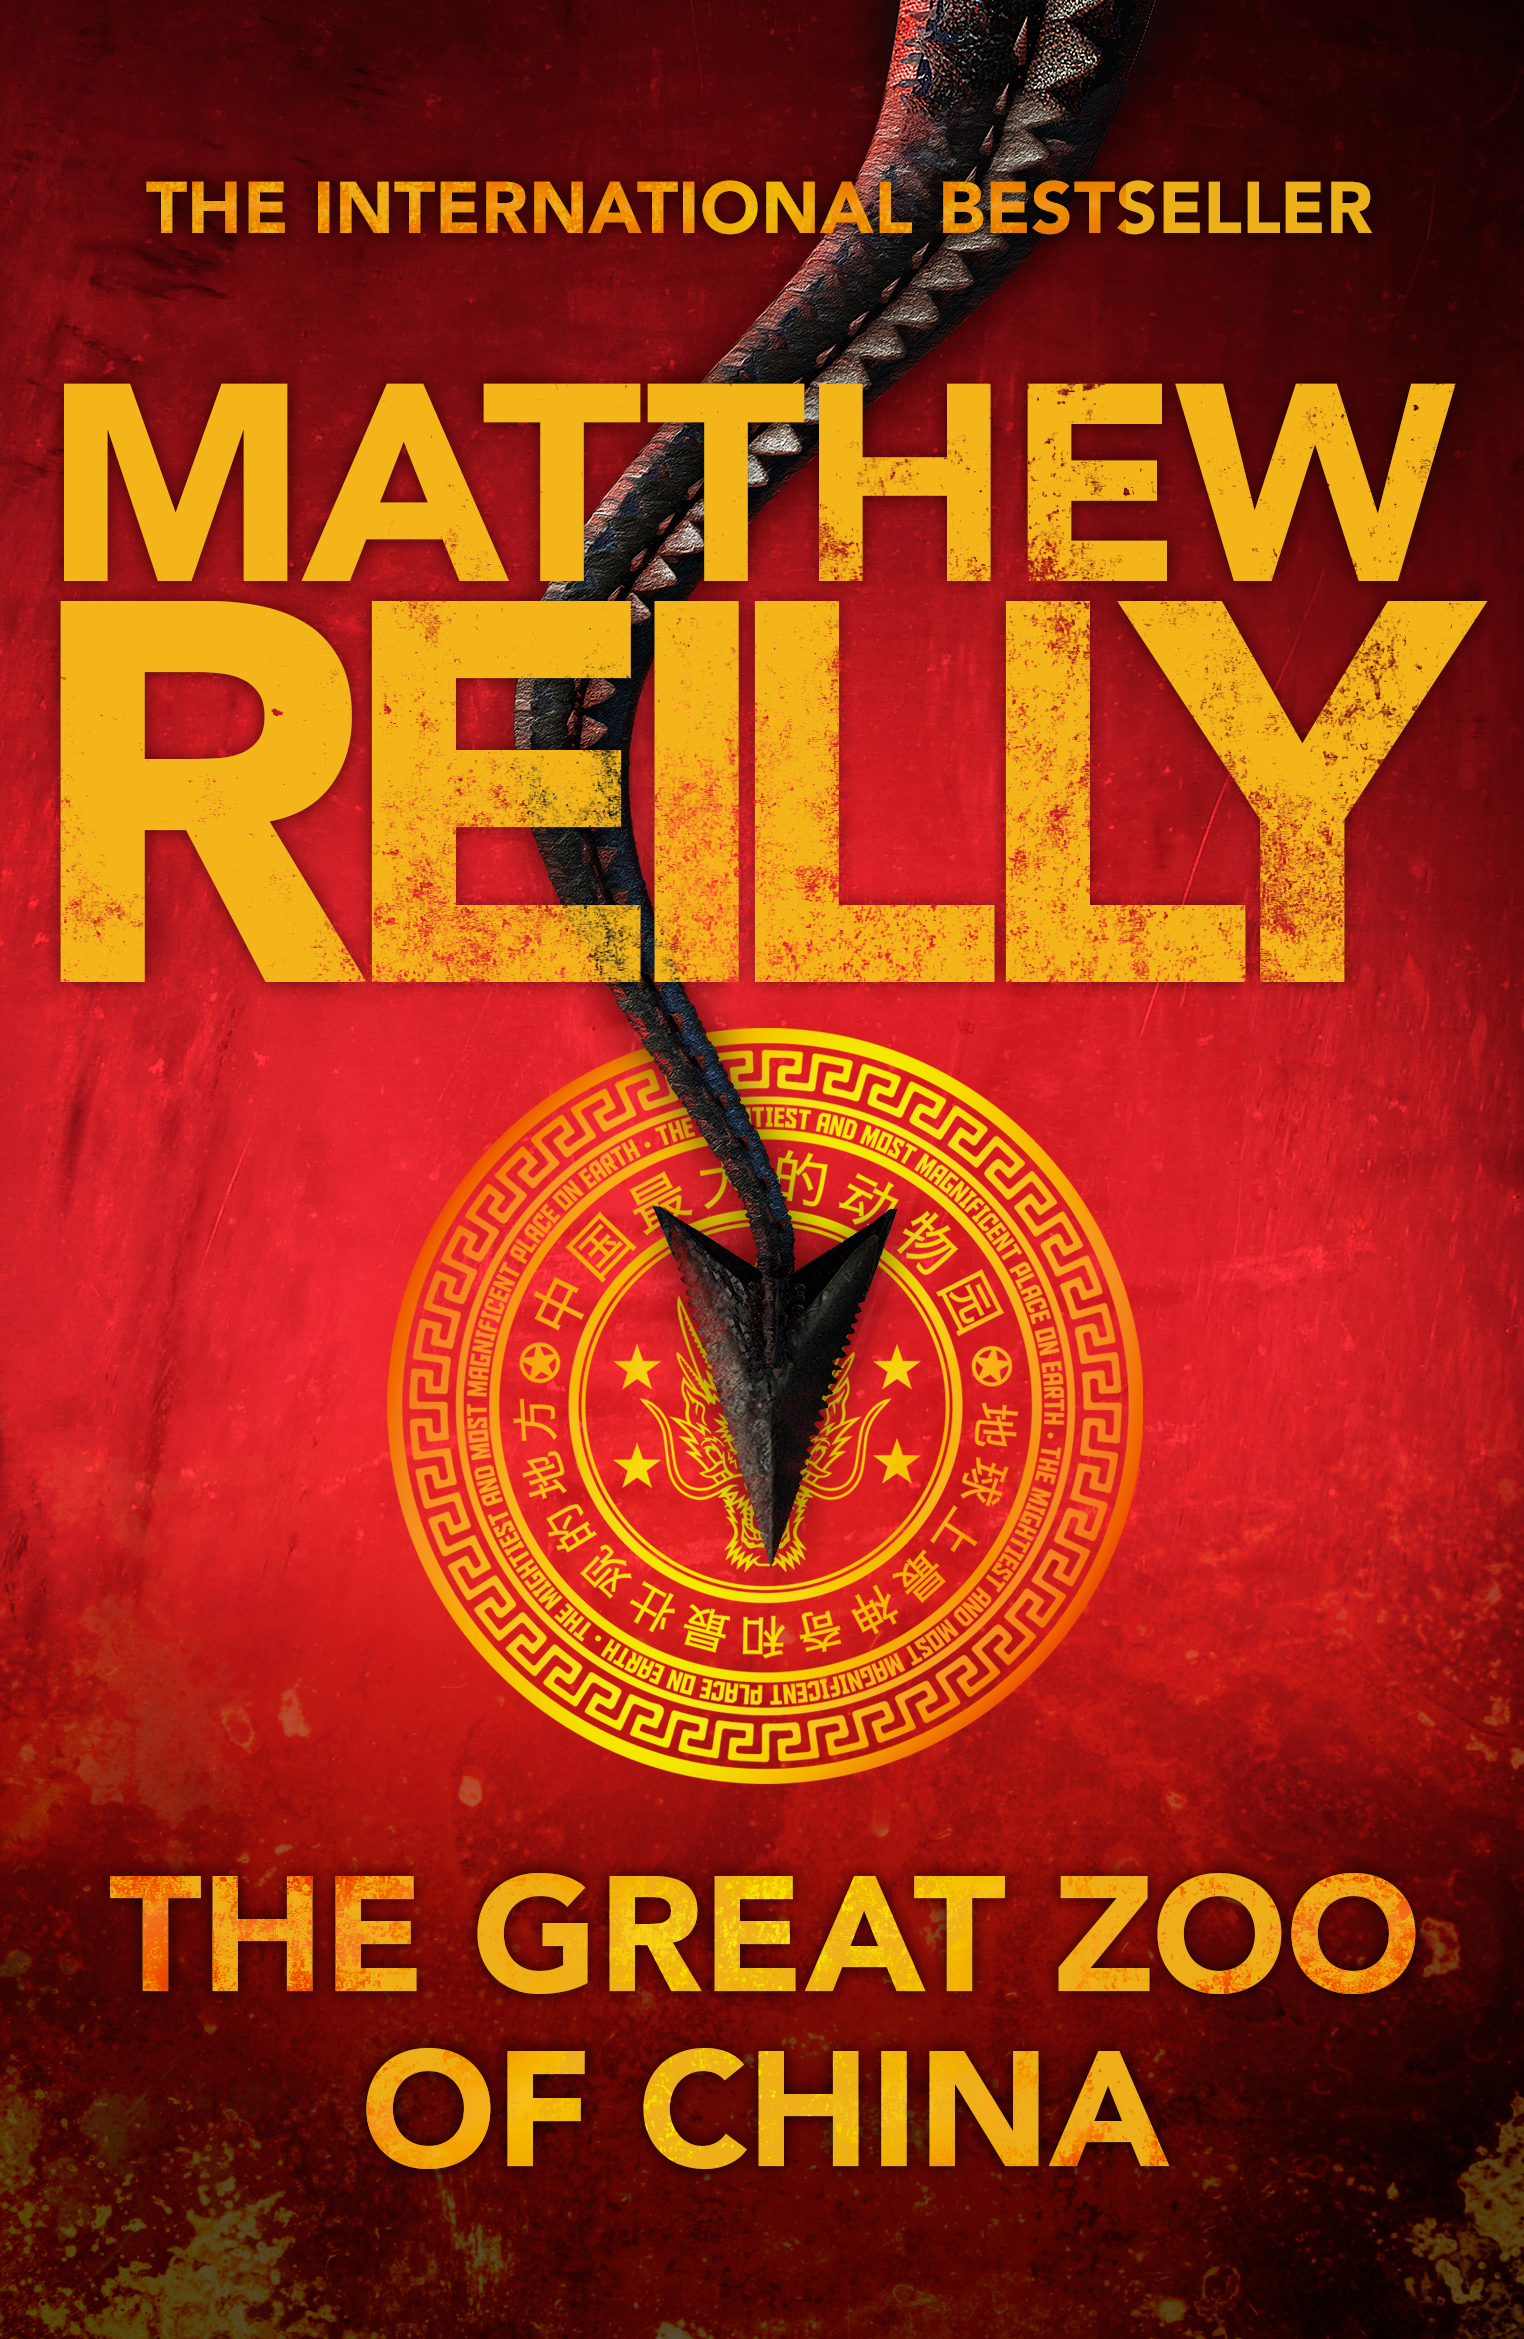 The Great Zoo of China